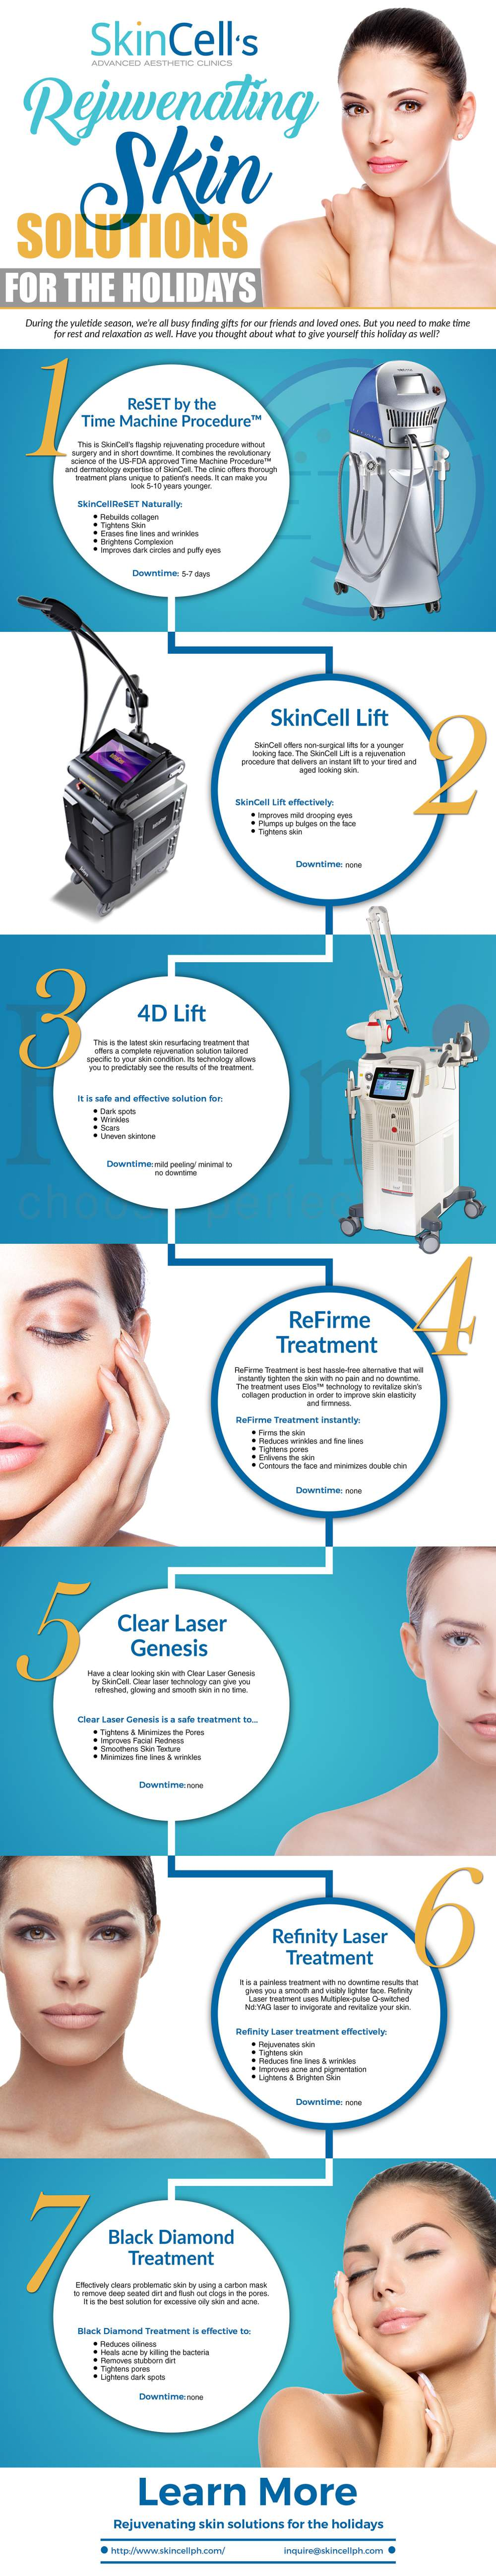 SkinCell's Rejuvenating Skin Solutions For the Holidays